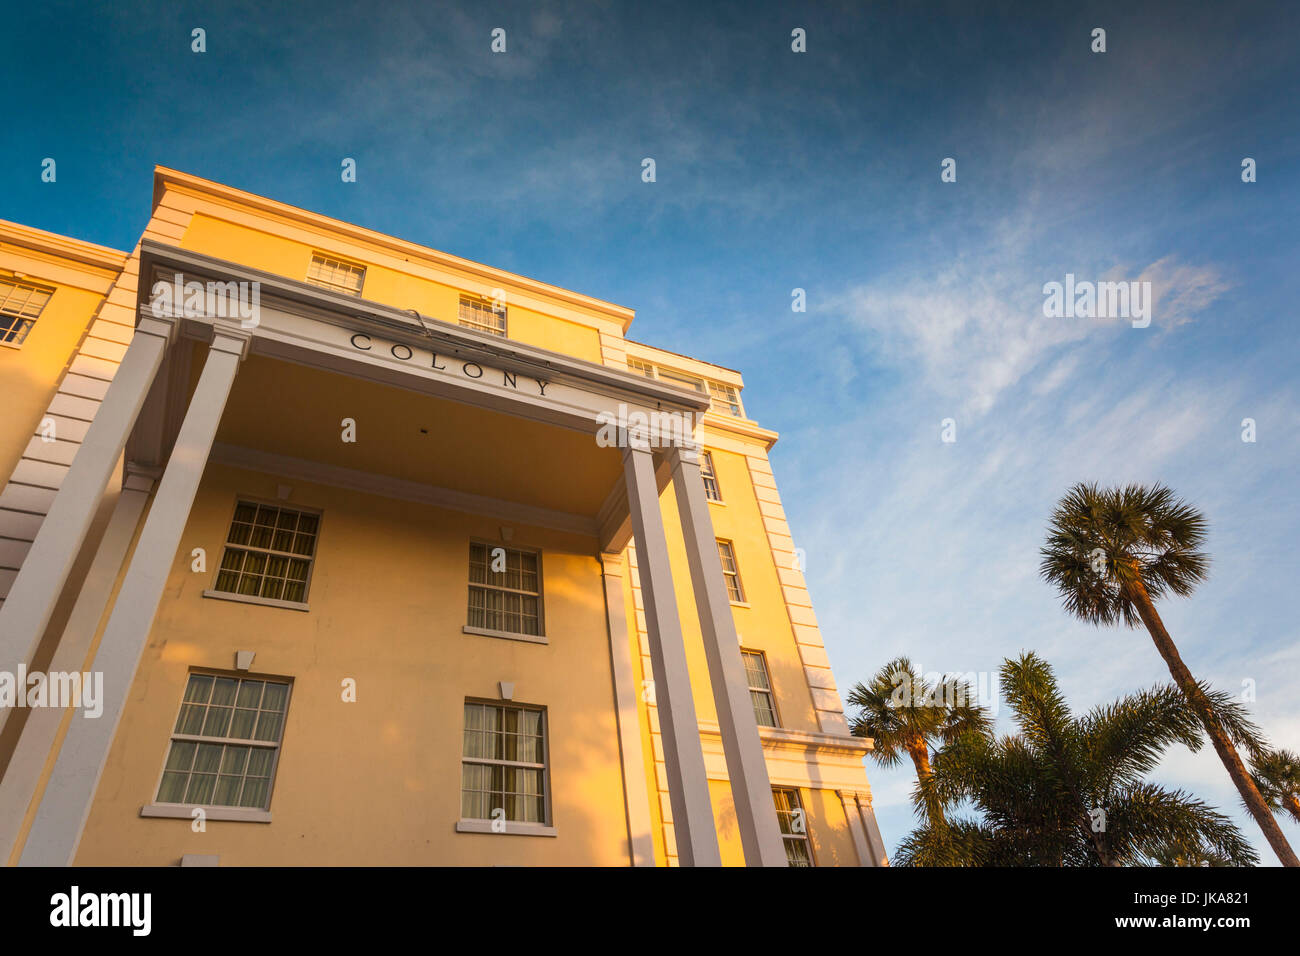 USA, Florida, Palm Beach, The Colony Hotel - Stock Image